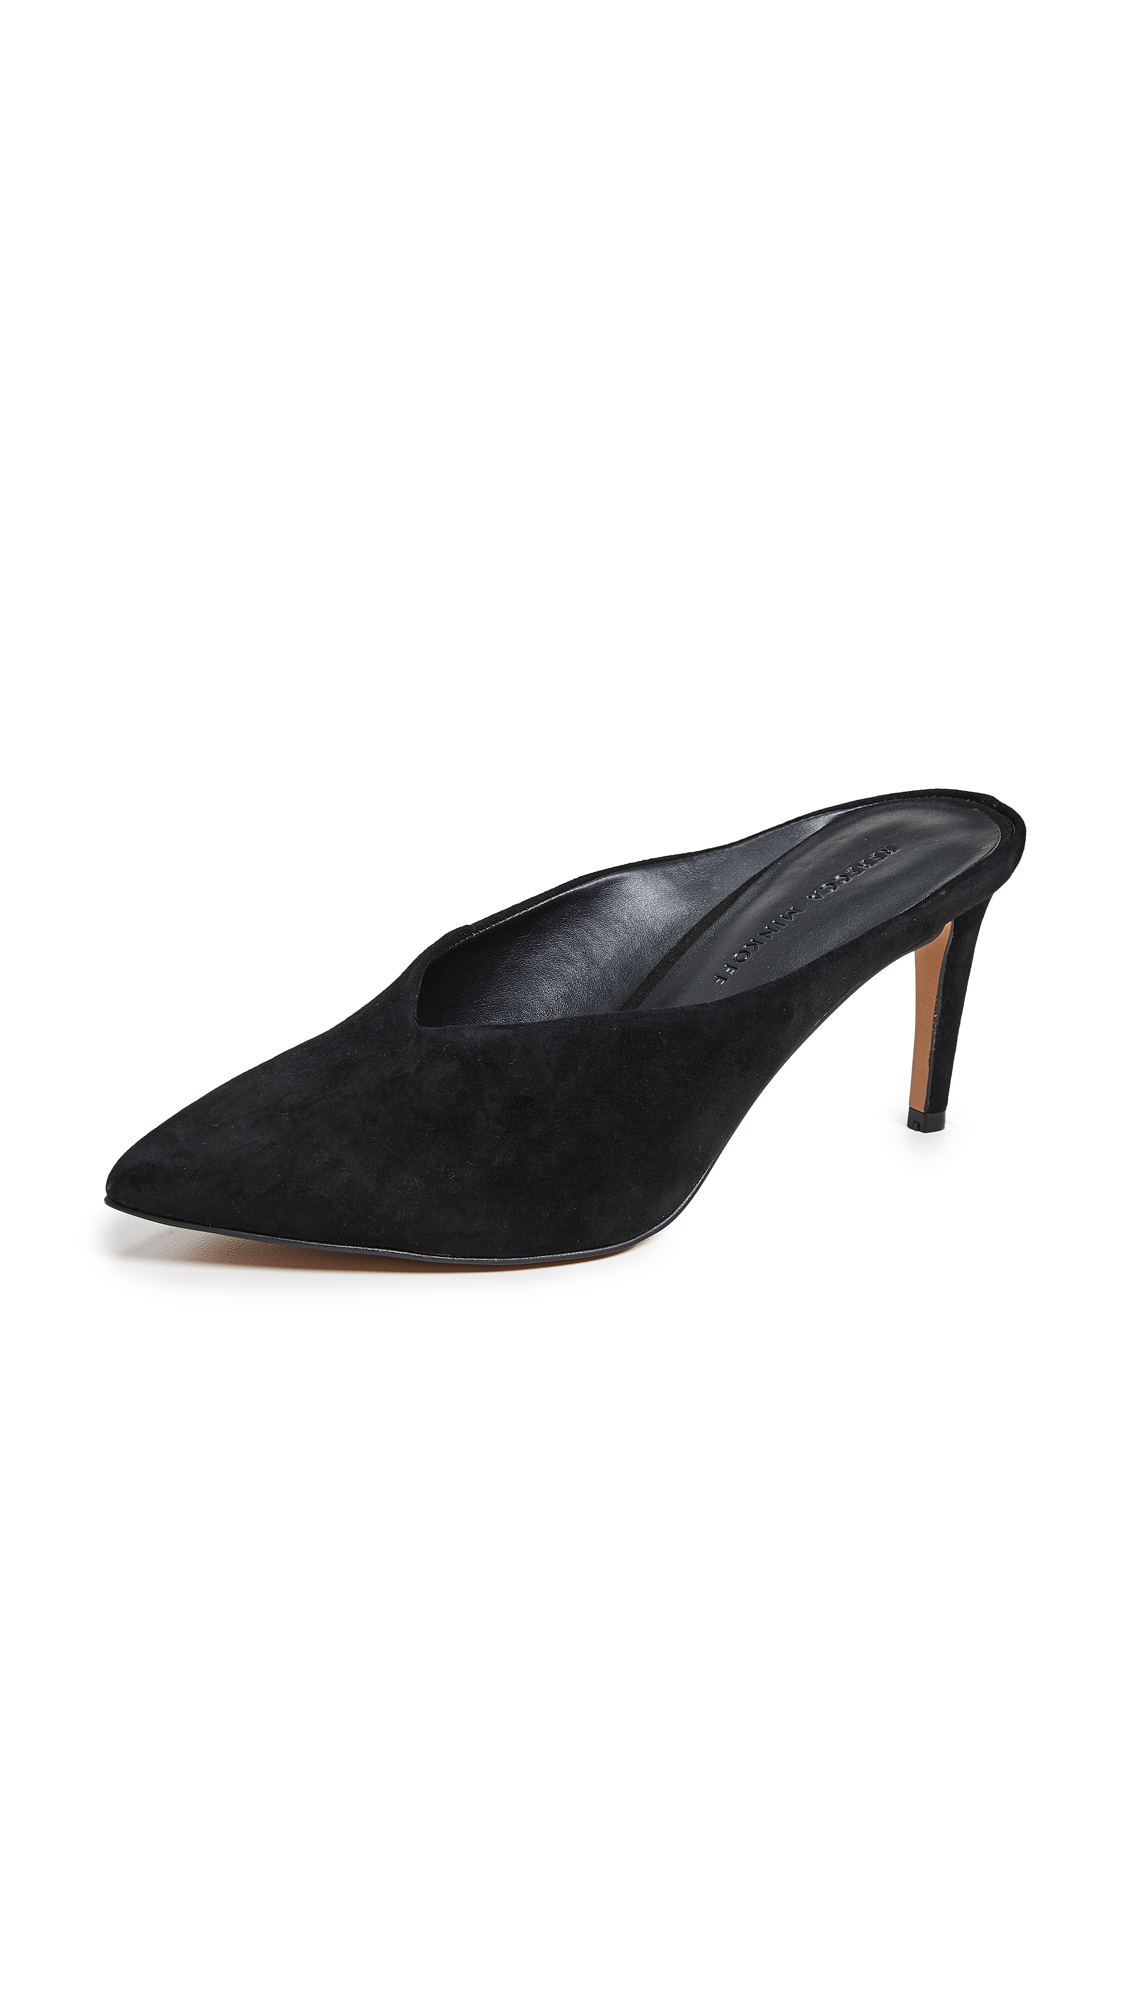 Rebecca Minkoff Graciano Point Toe Mules - Black